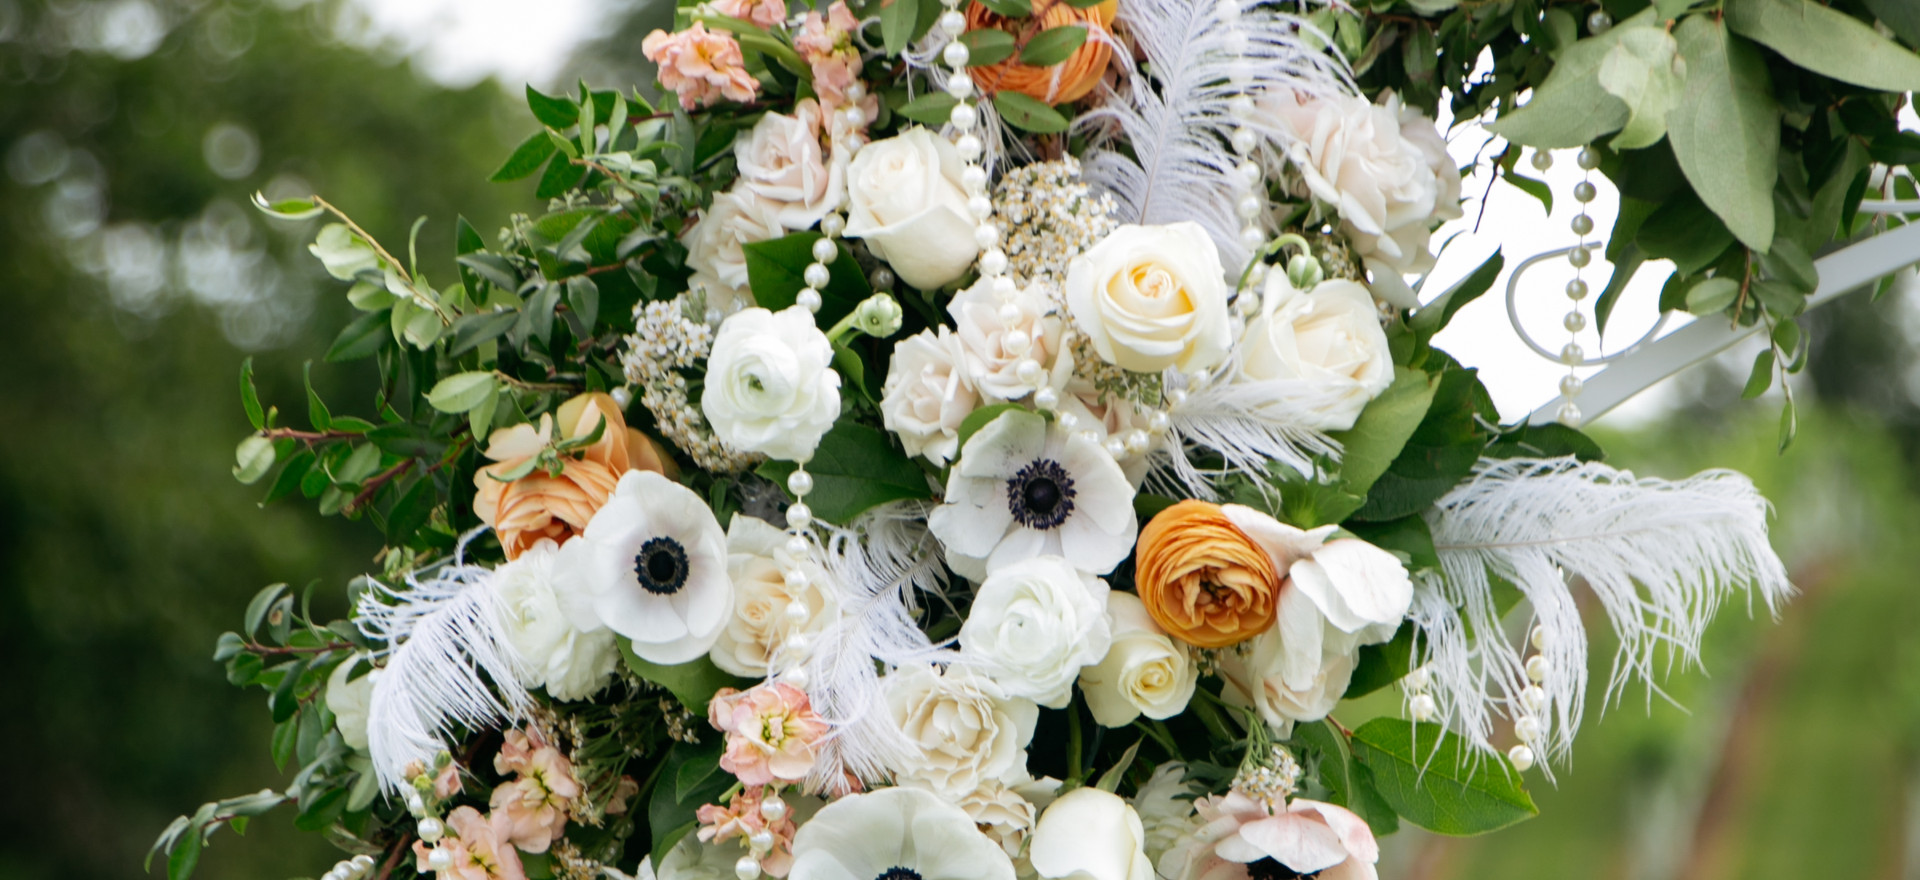 kelly ceremony flowers.jpg